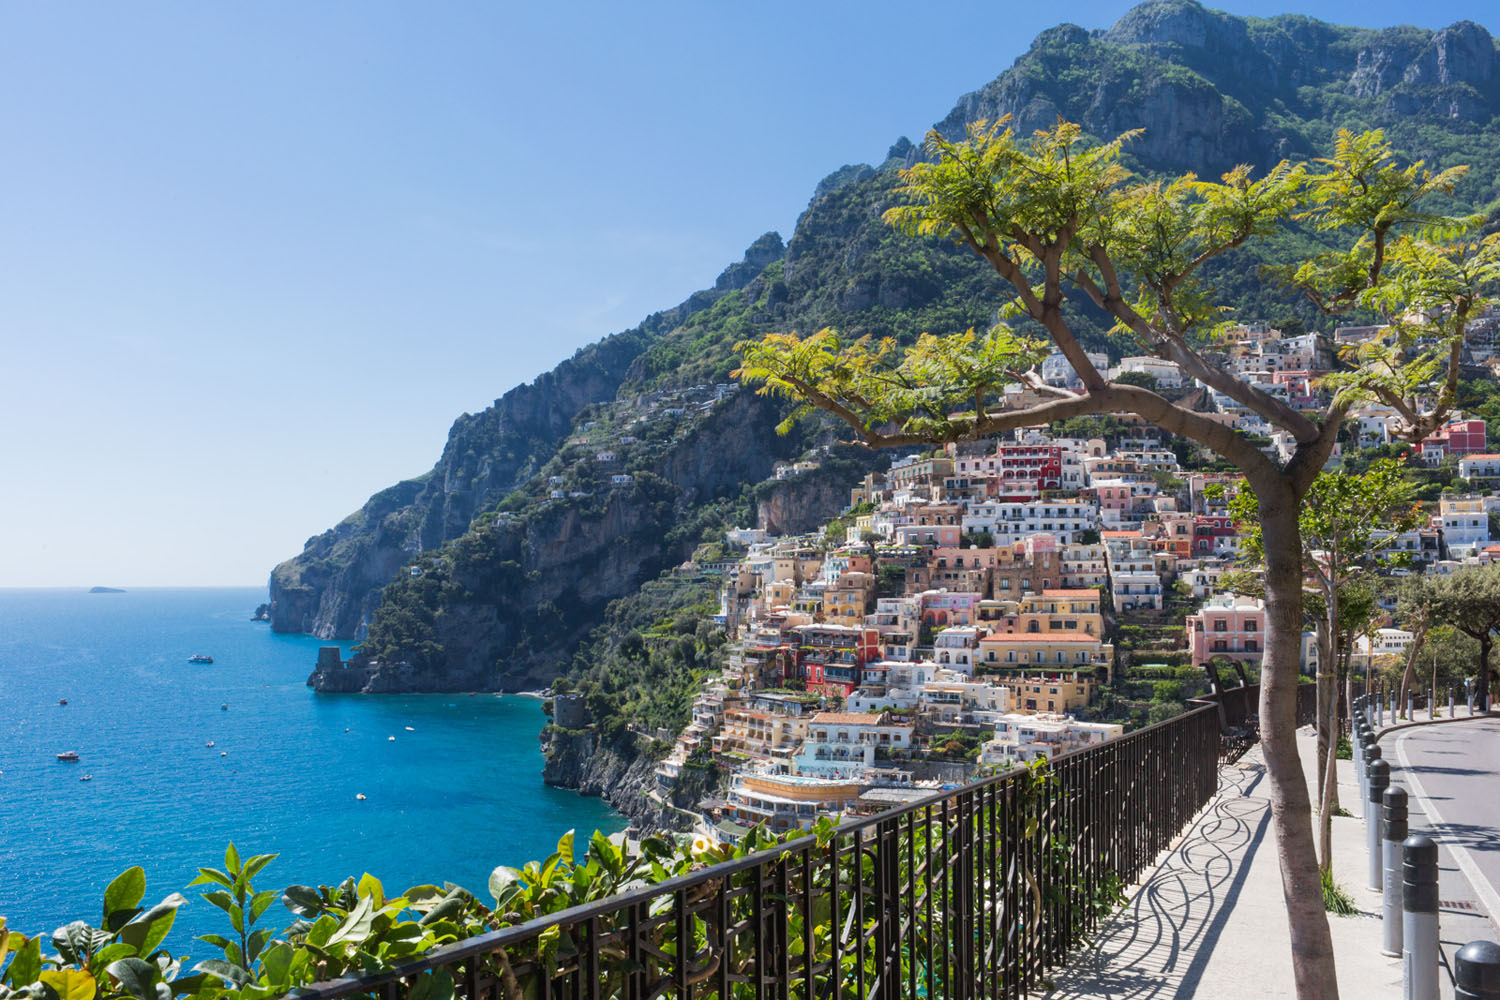 Positano Coast of Amalfi, Italy